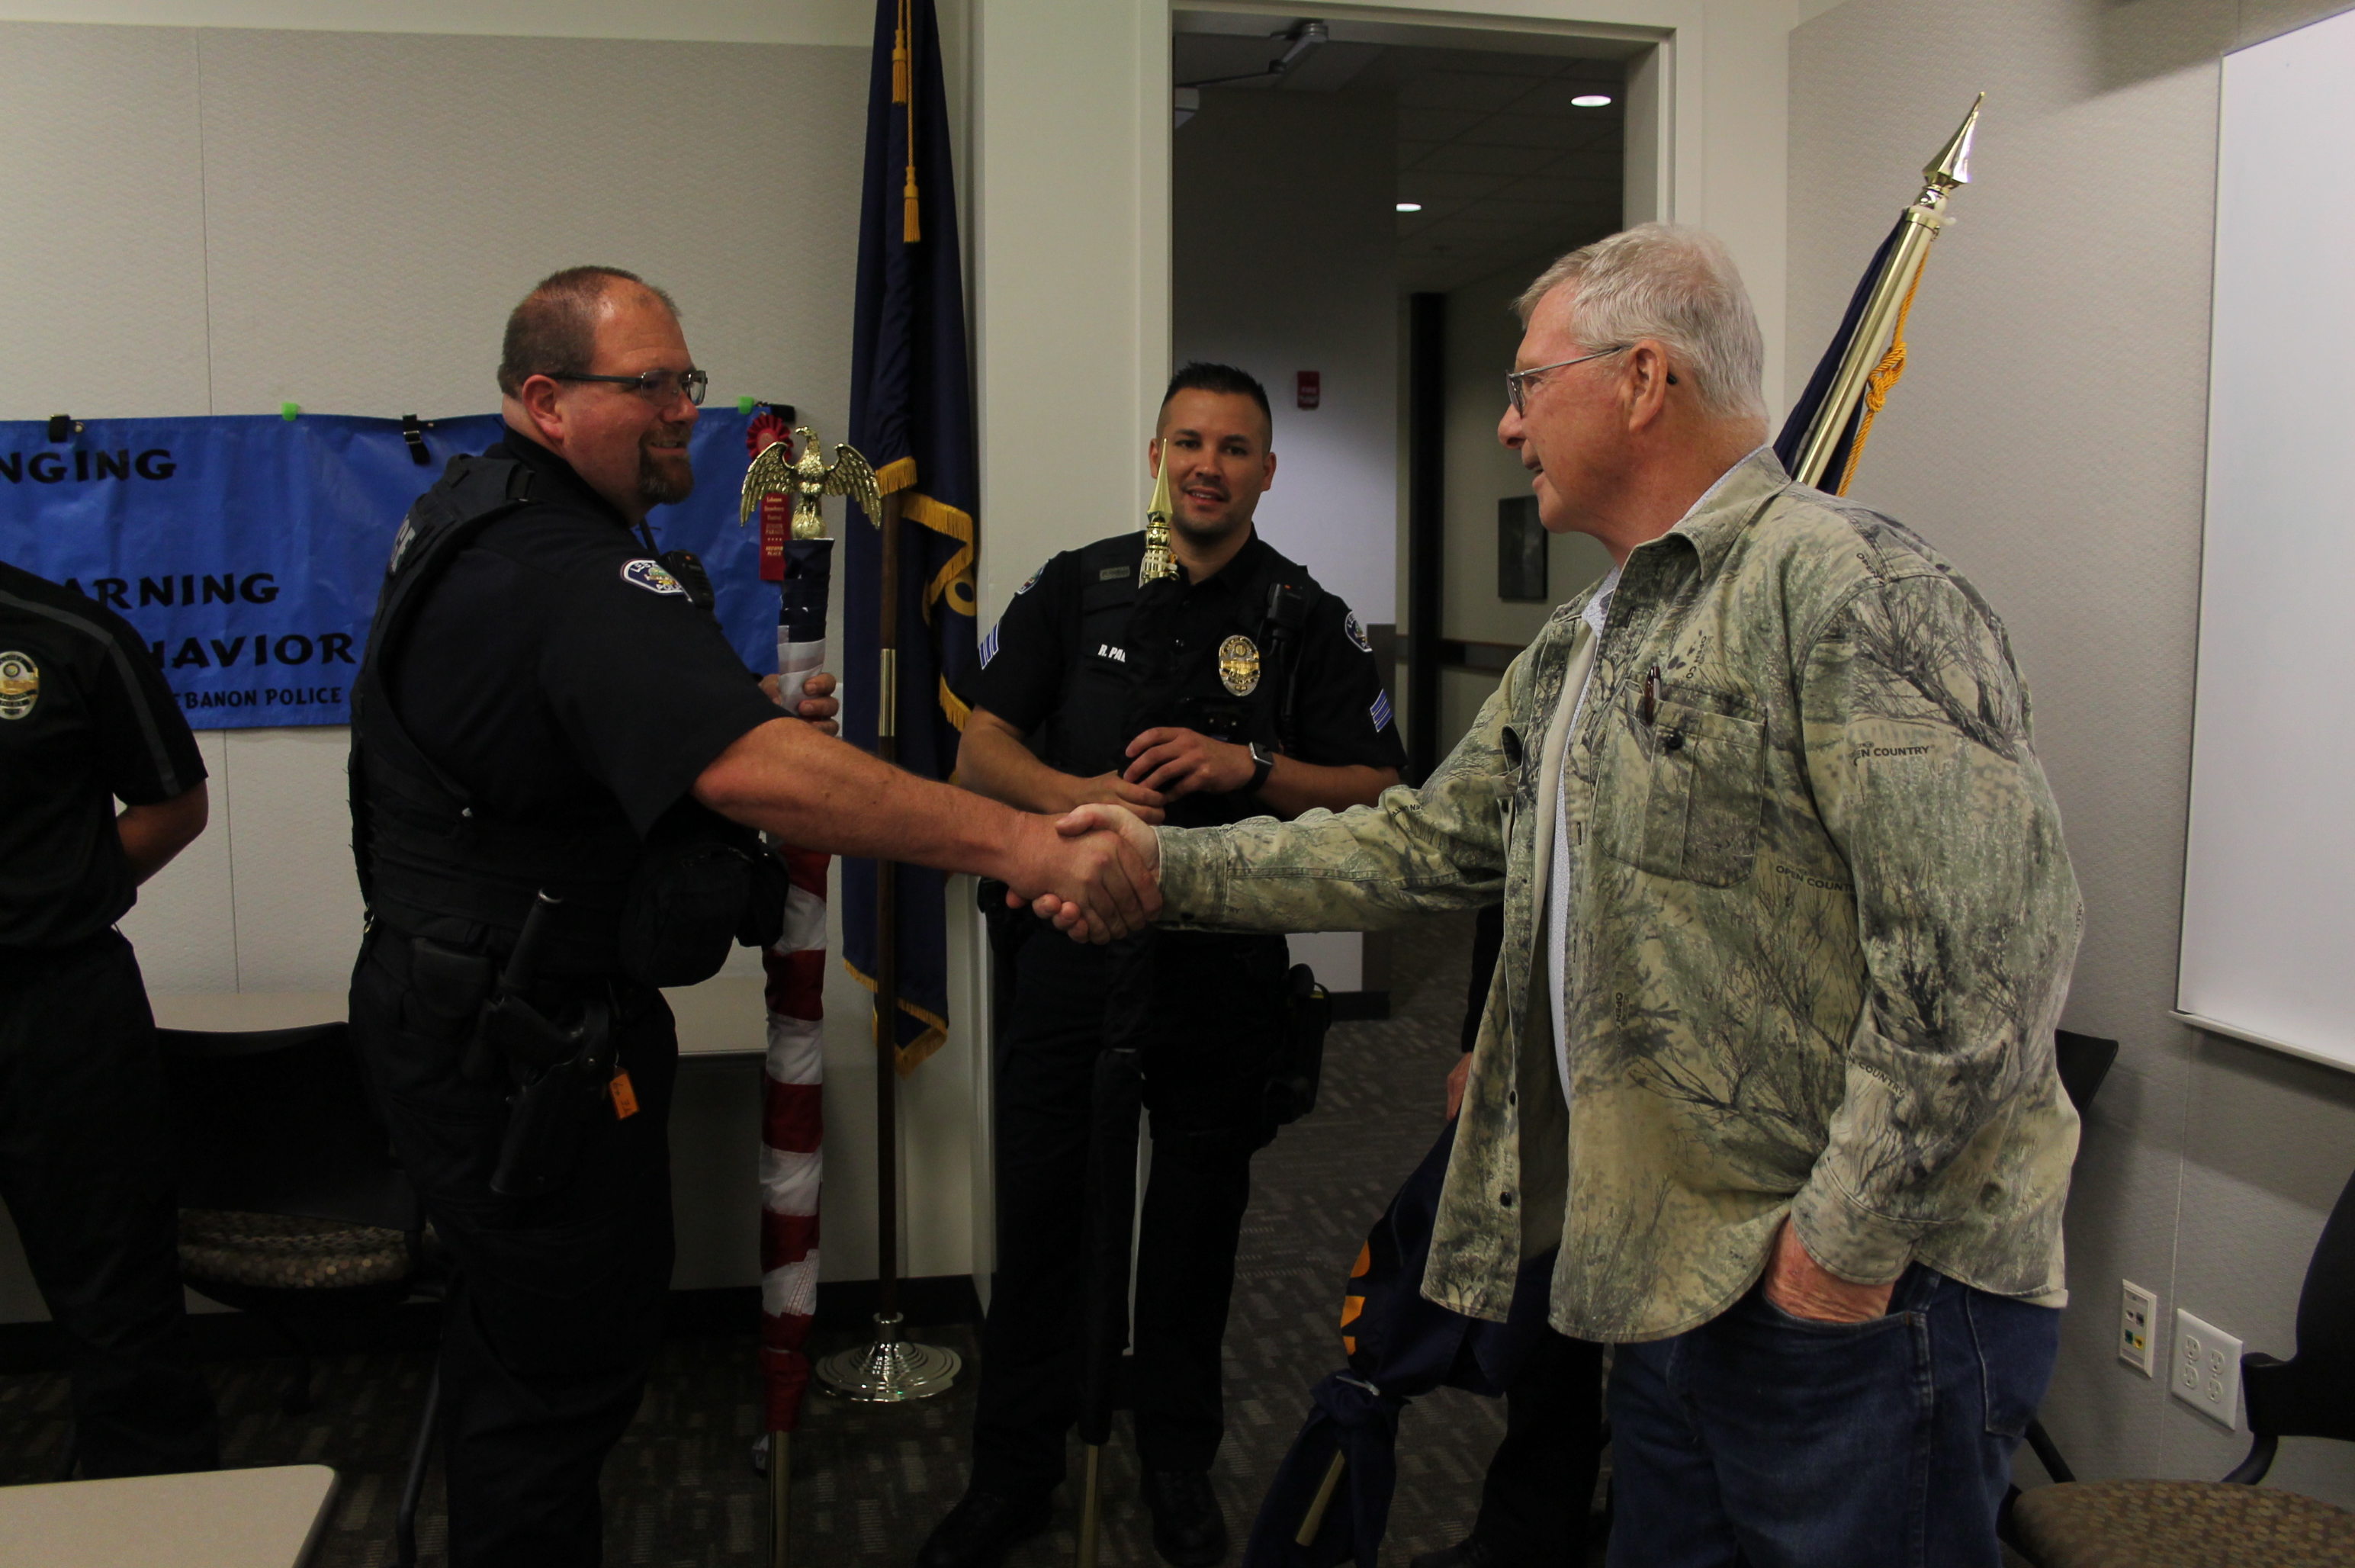 Police cadets receive flags | Lebanon Local